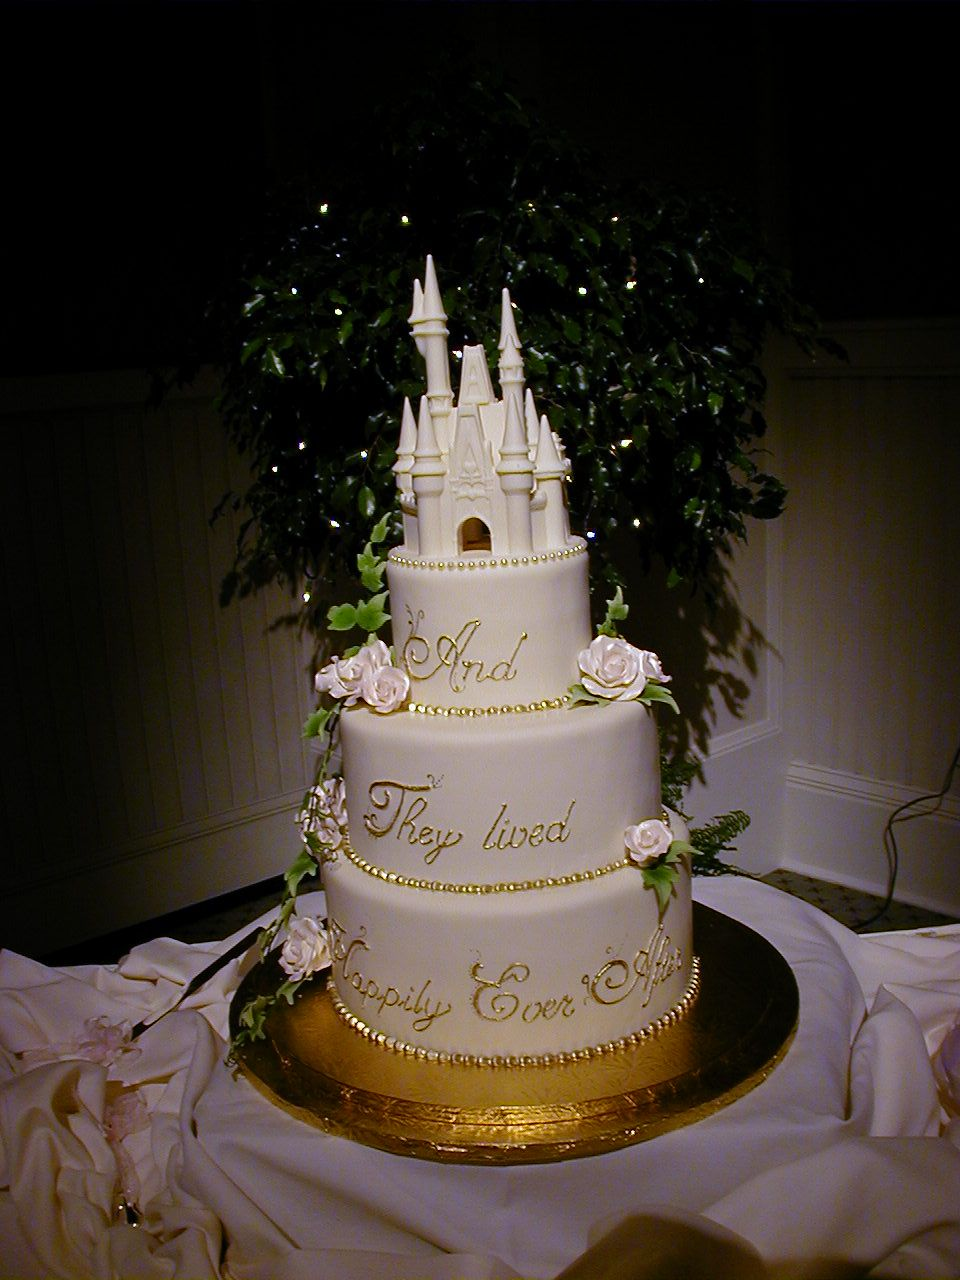 Disneyland Wedding Dreams: Disney Wedding Cake ideas ...